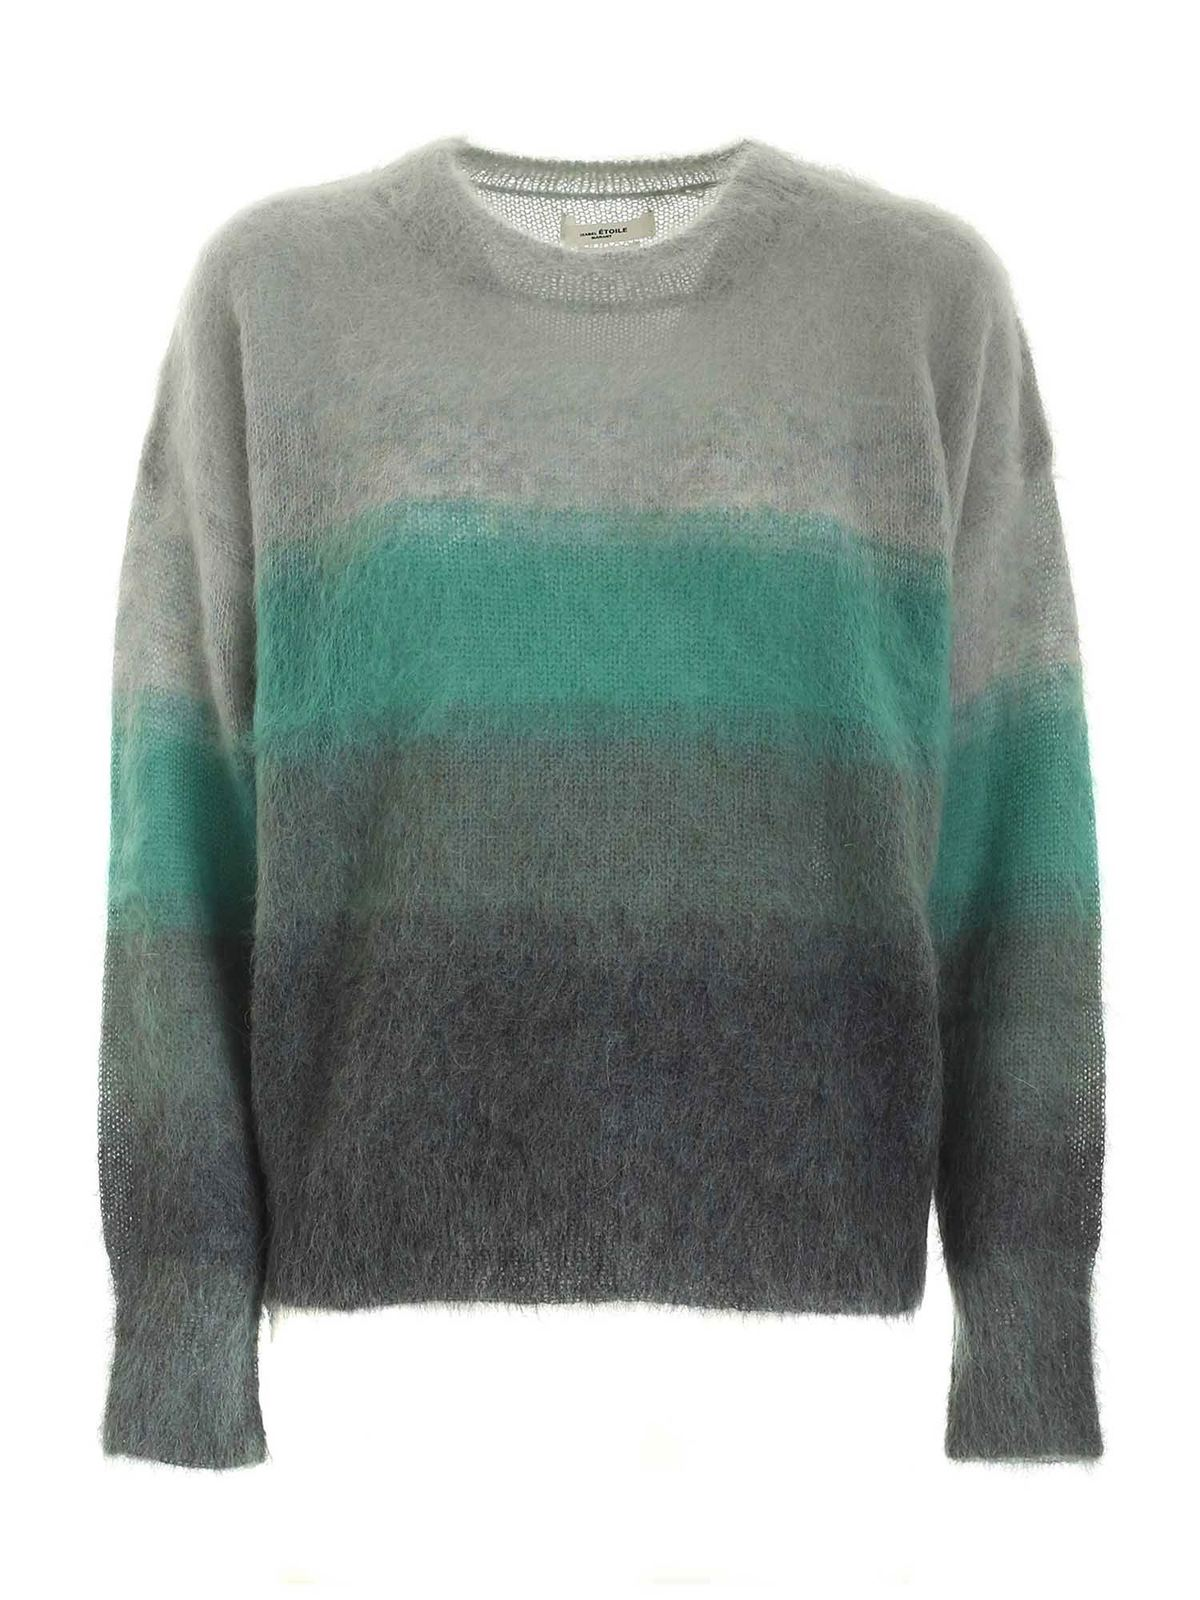 Etoile Isabel Marant DRUSSELL PULLOVER IN SHADES OF GREEN